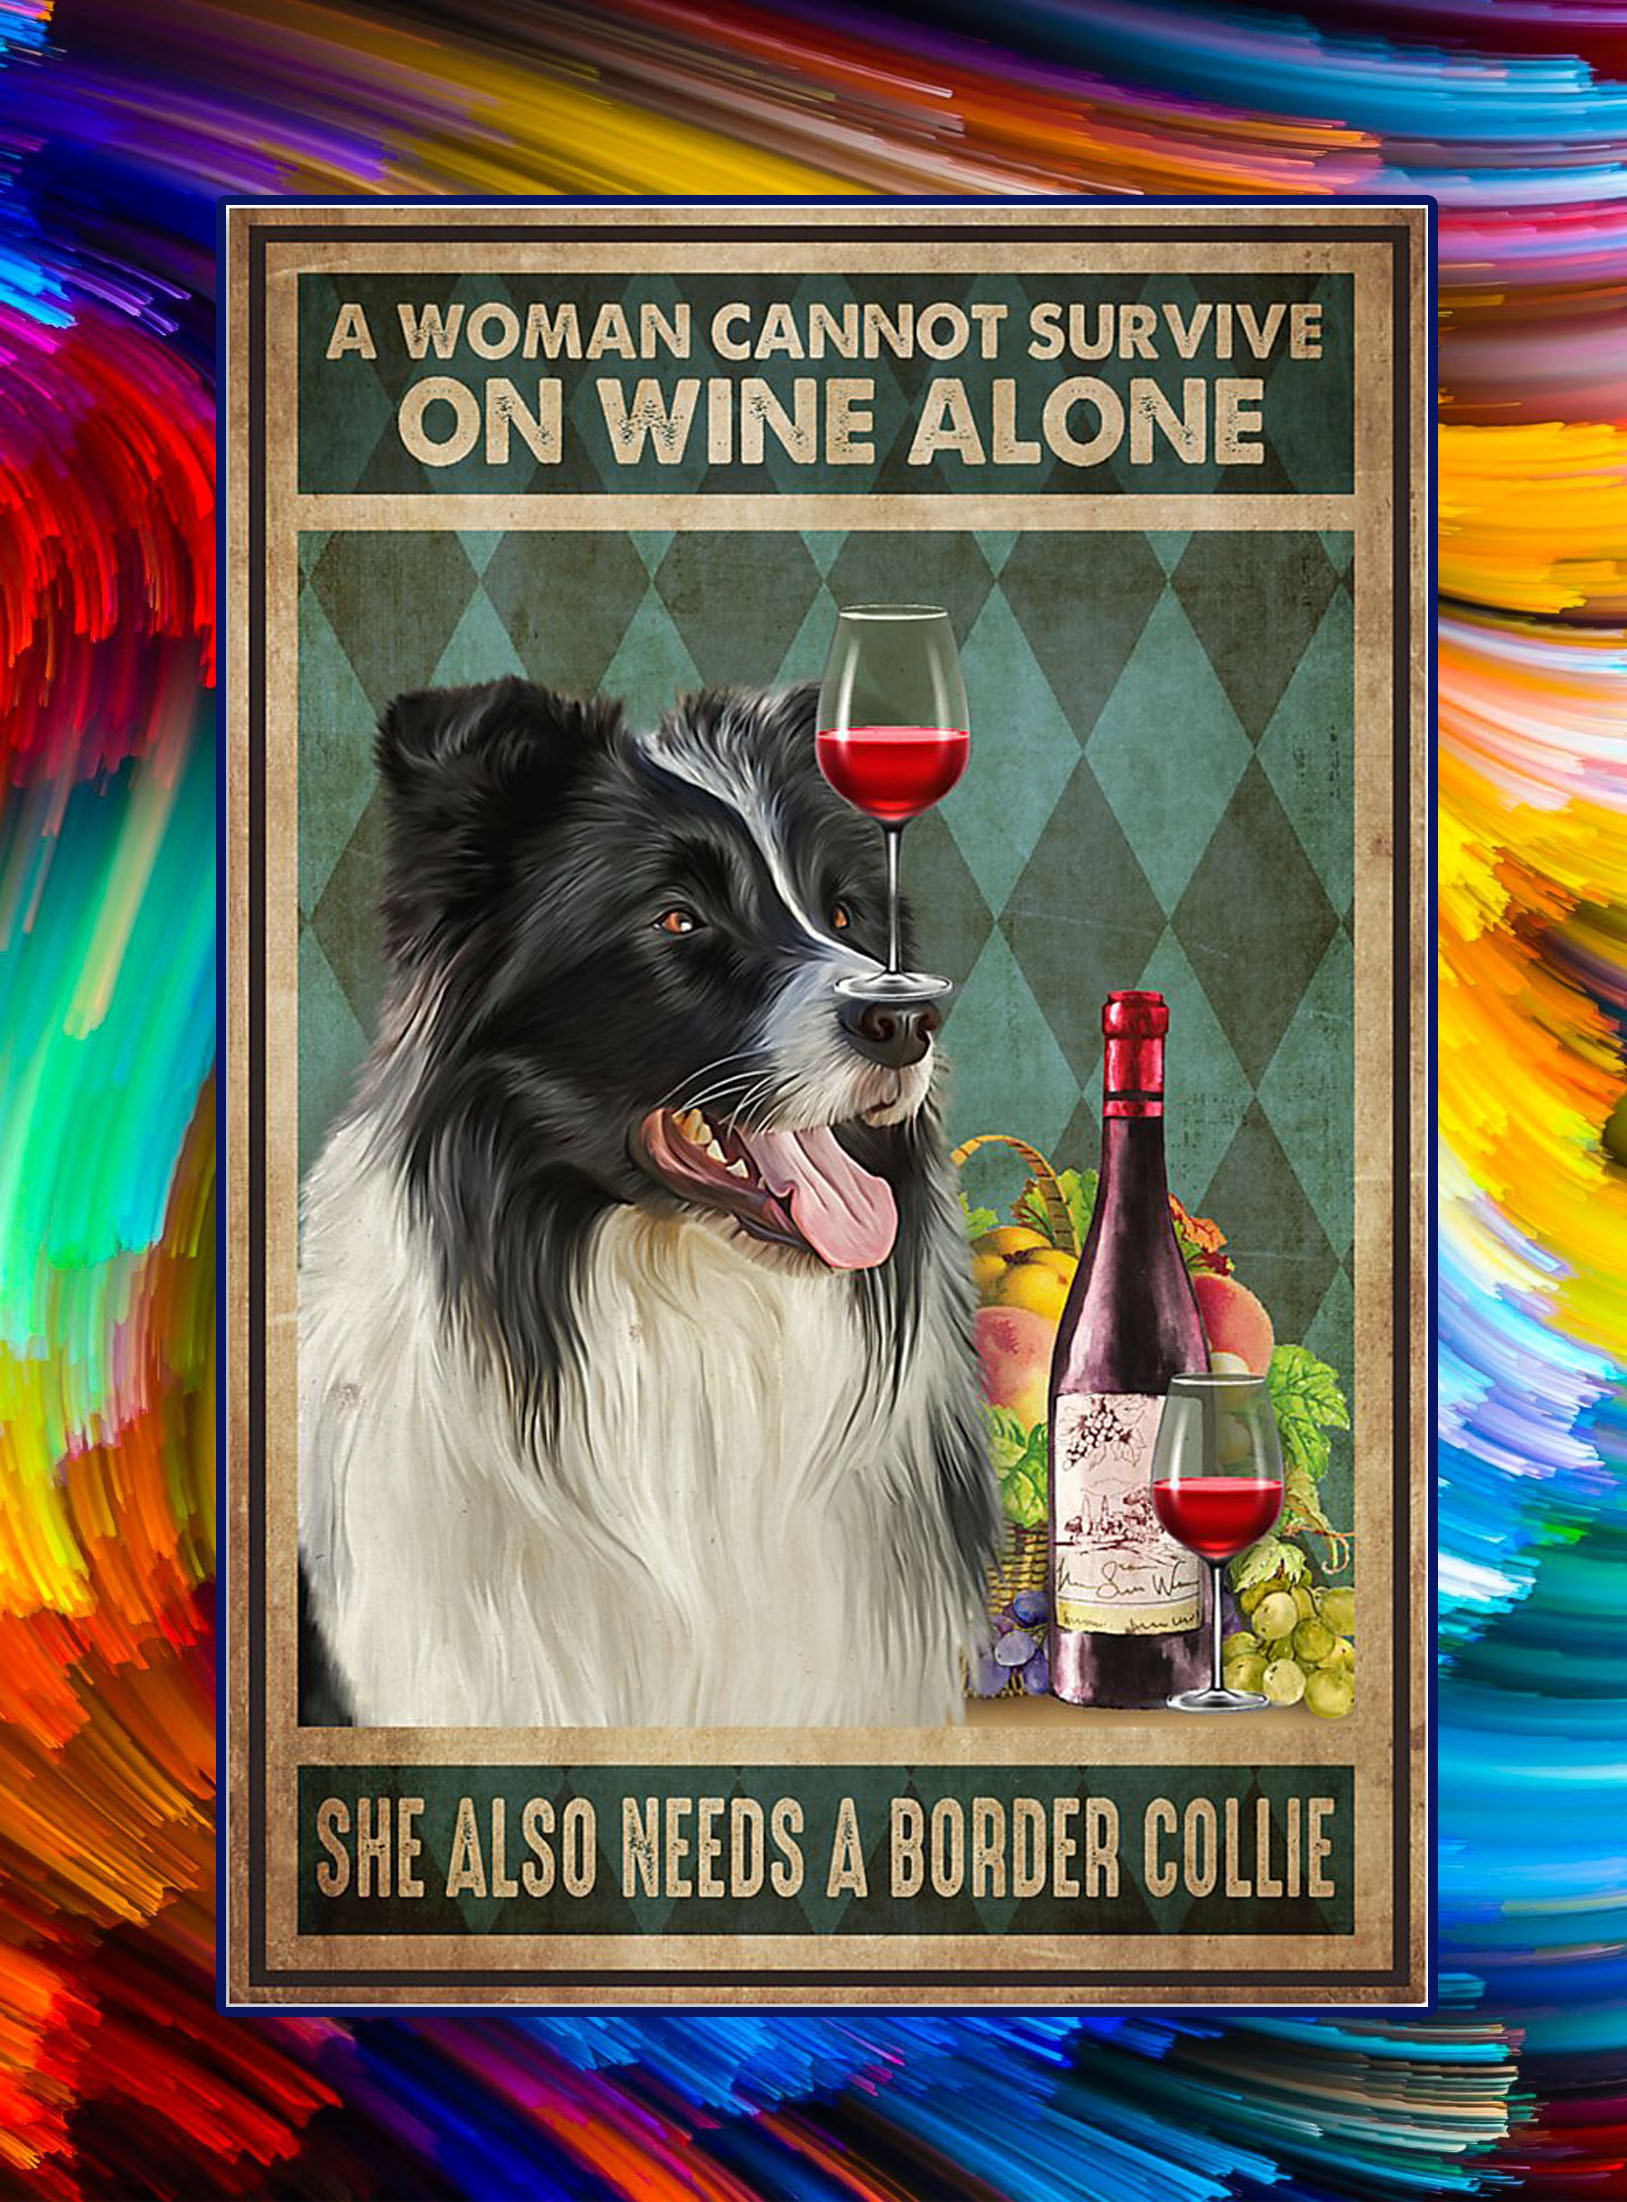 A woman cannot survive on wine alone she also needs a border collie poster